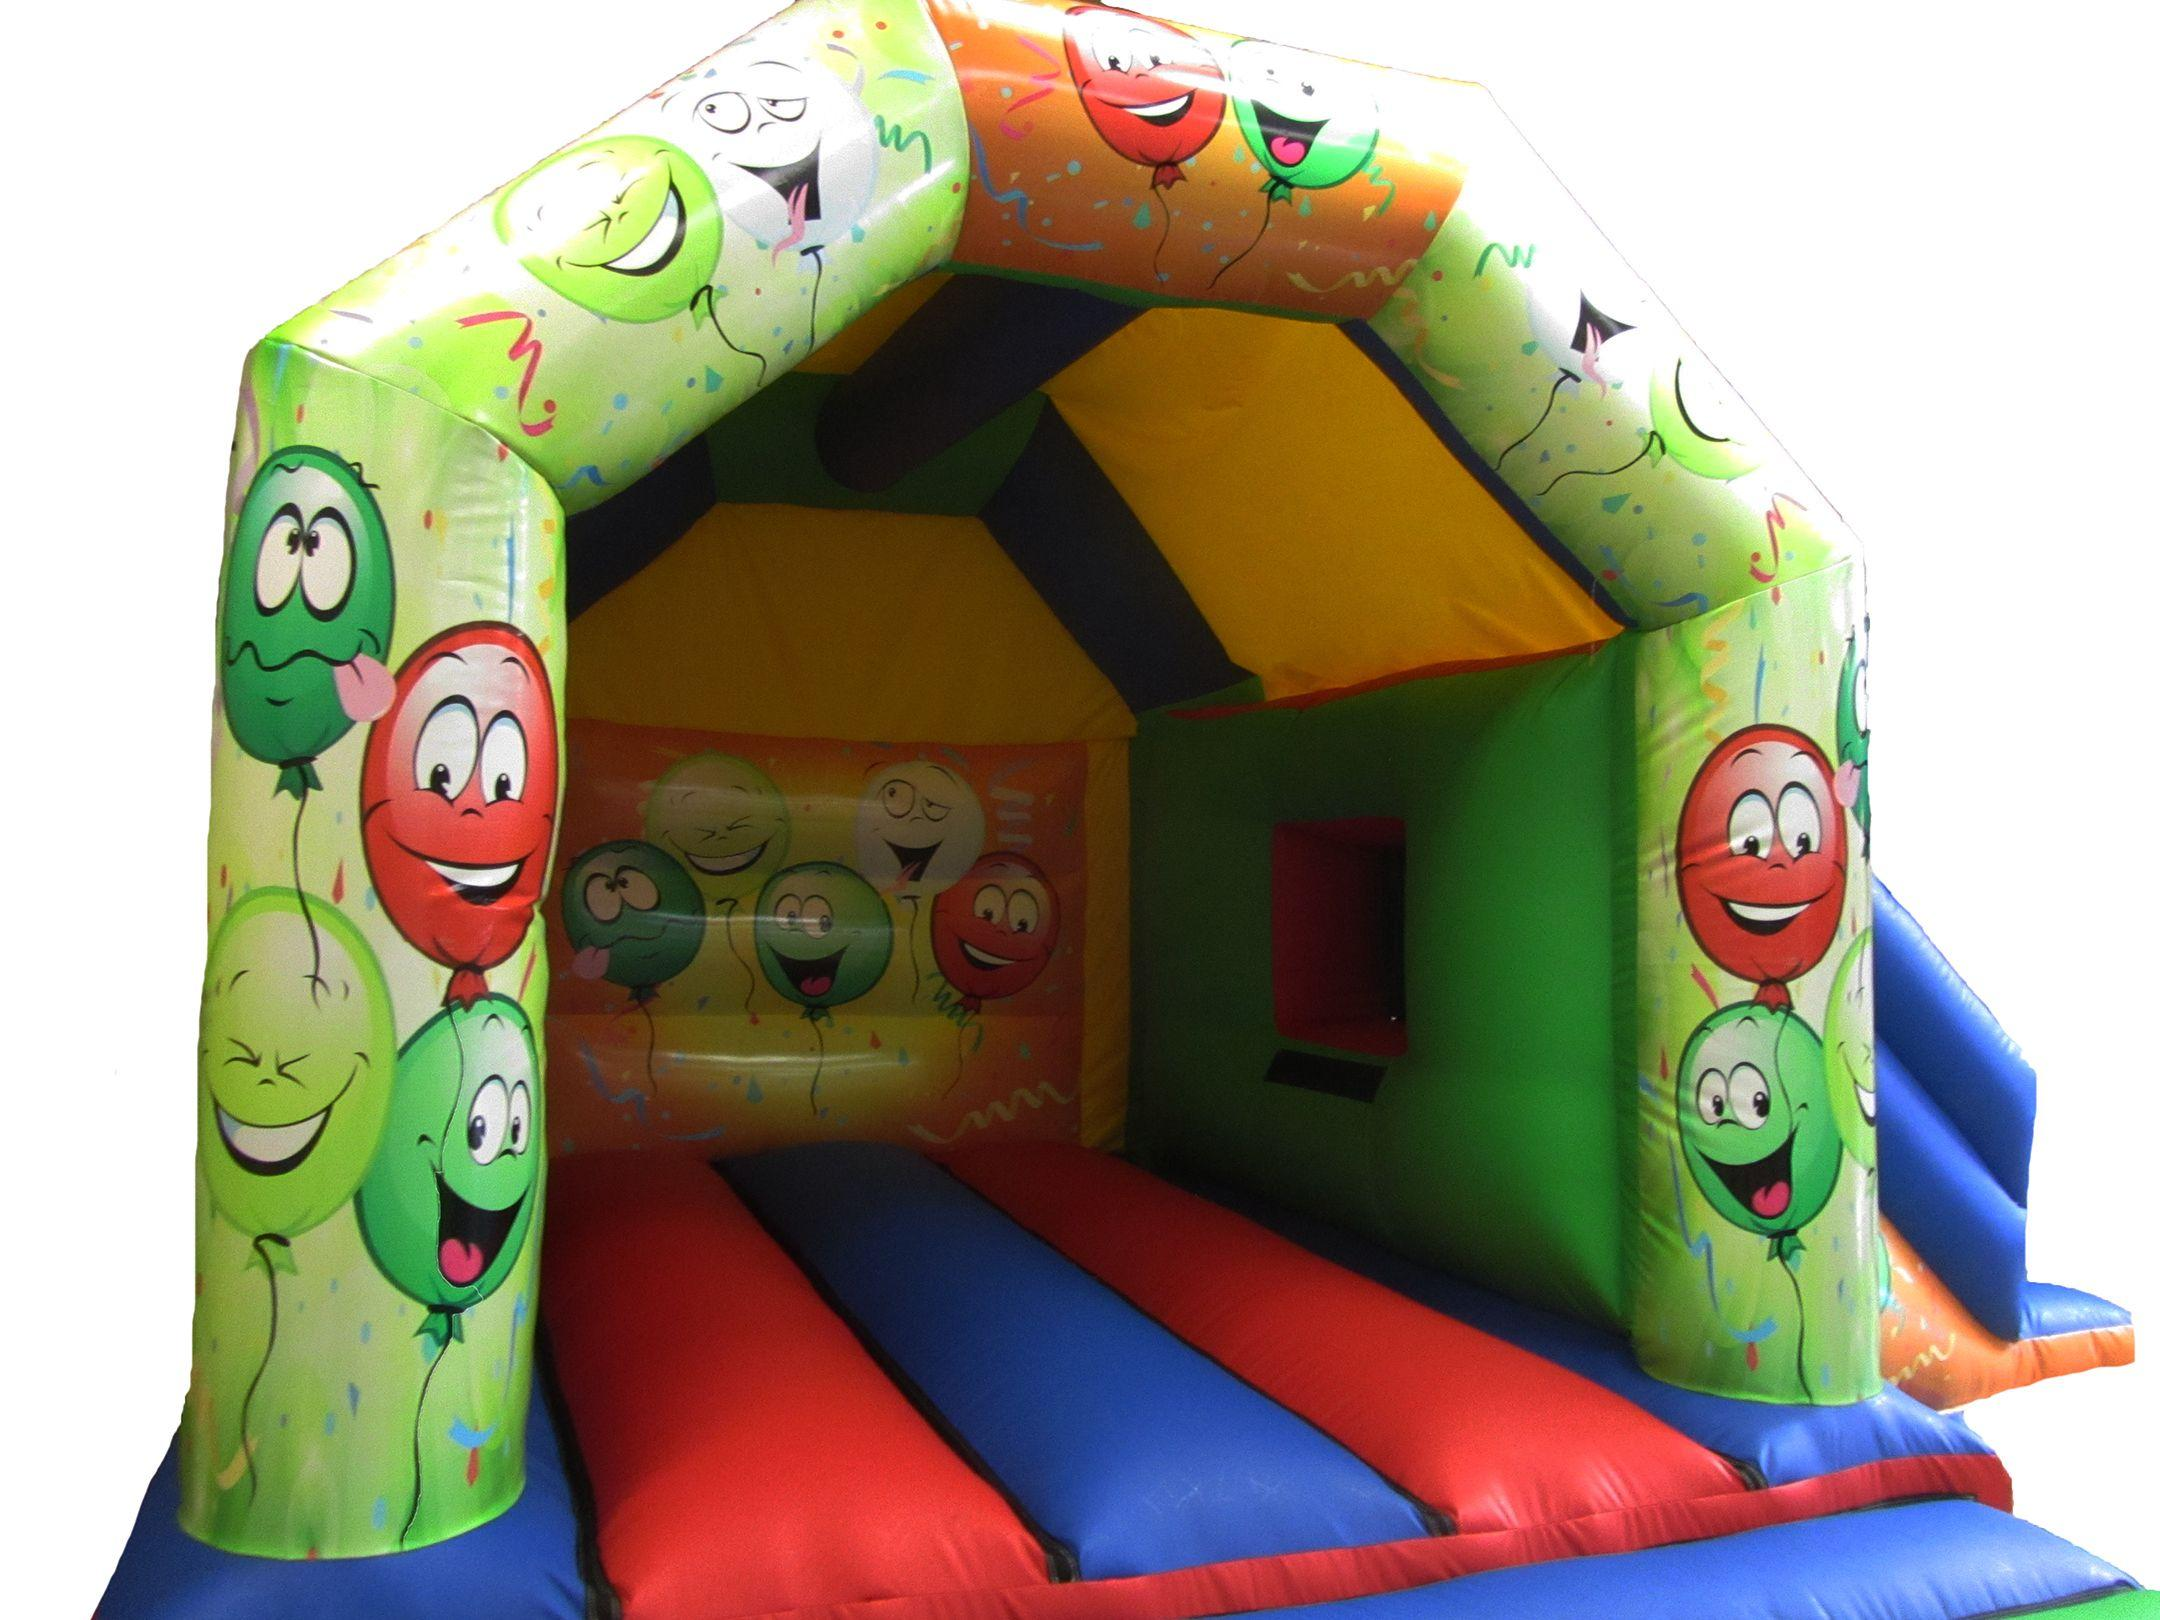 17x15 smiley face combi bouncy castle compressor